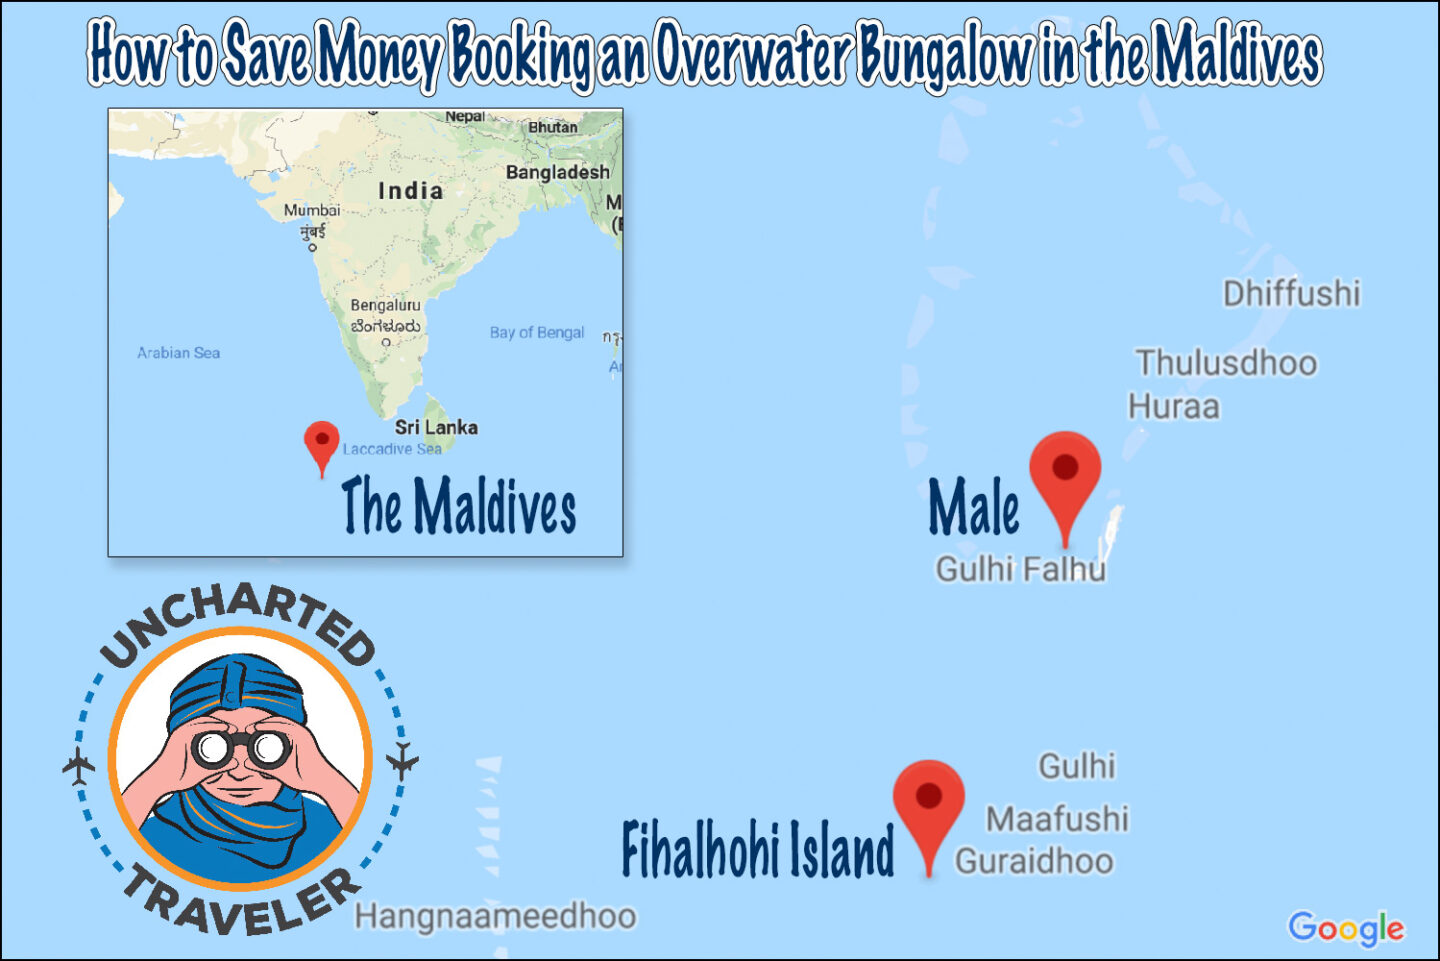 How To Save Money Booking An Overwater Bungalow In The